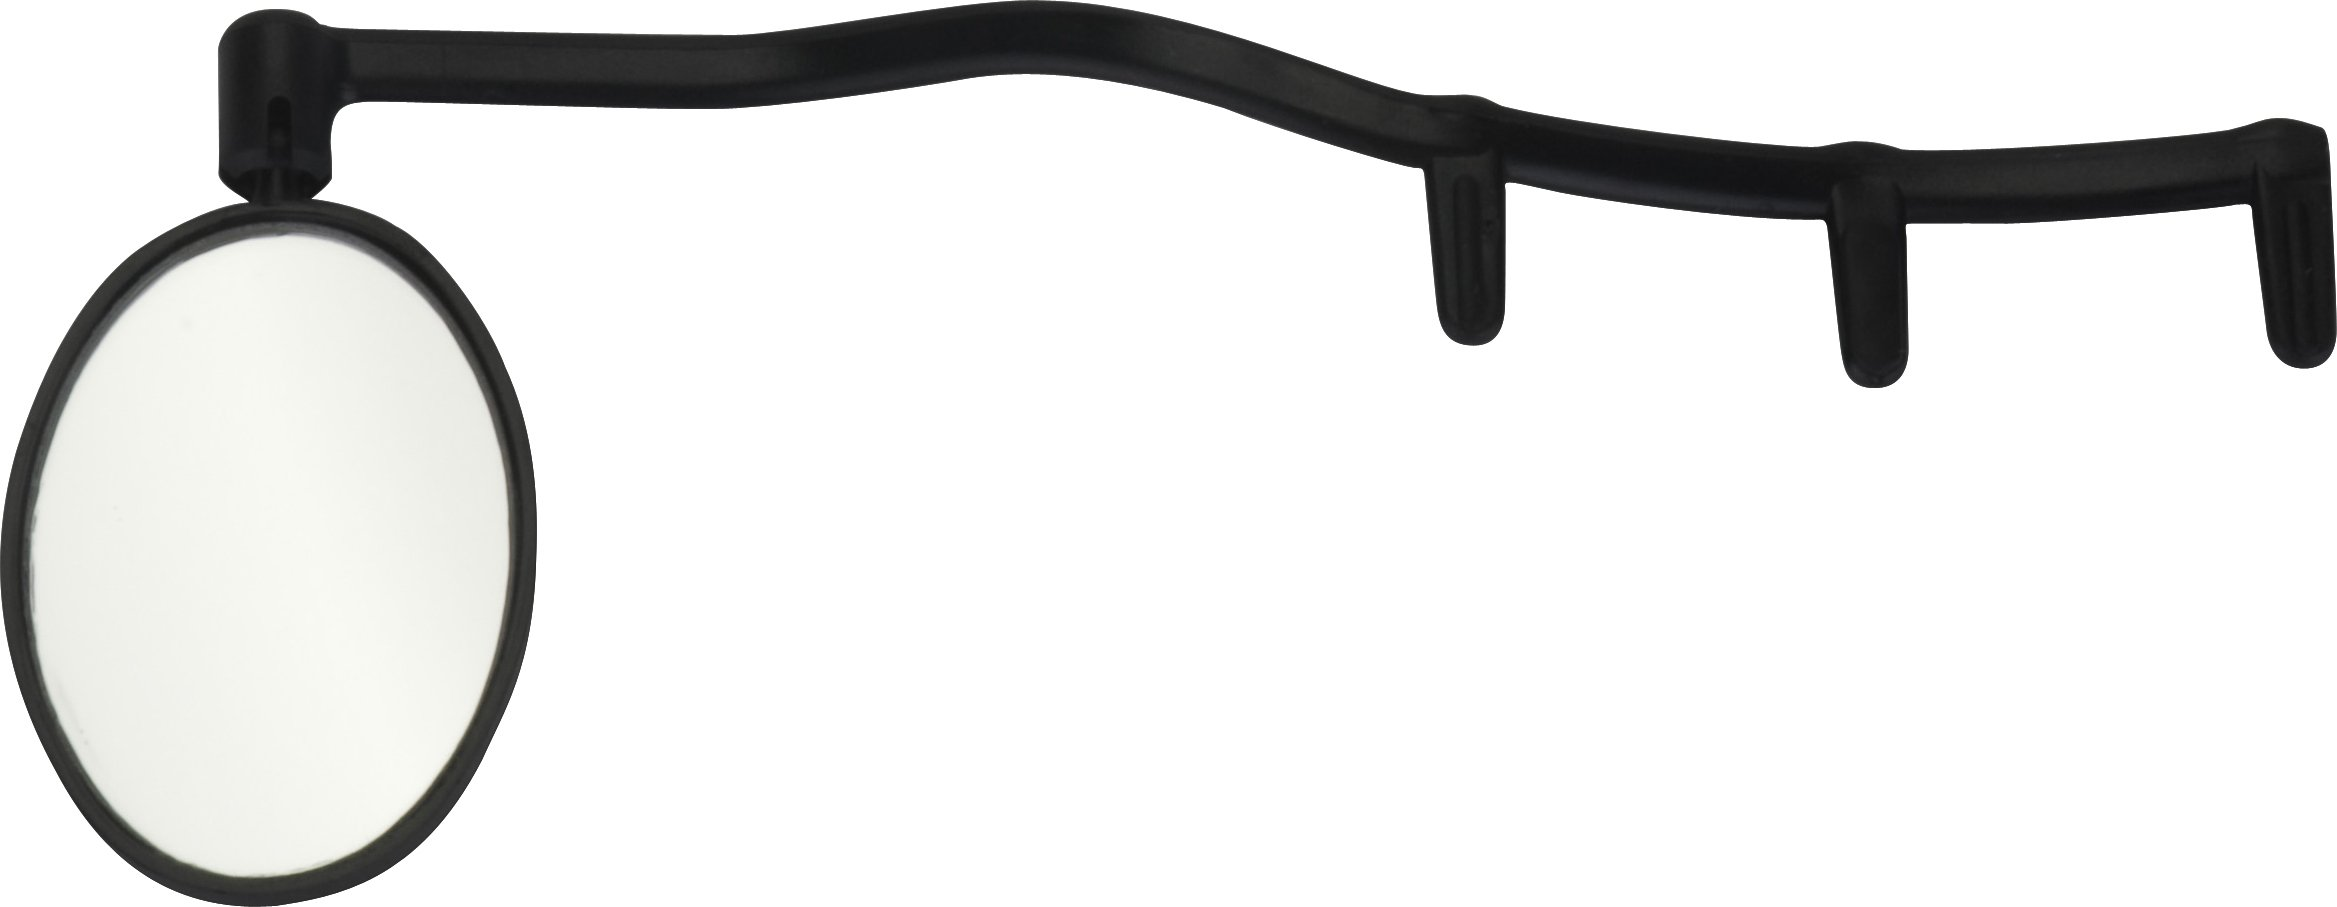 CycleAware Heads Up the eyewear mounted mirror